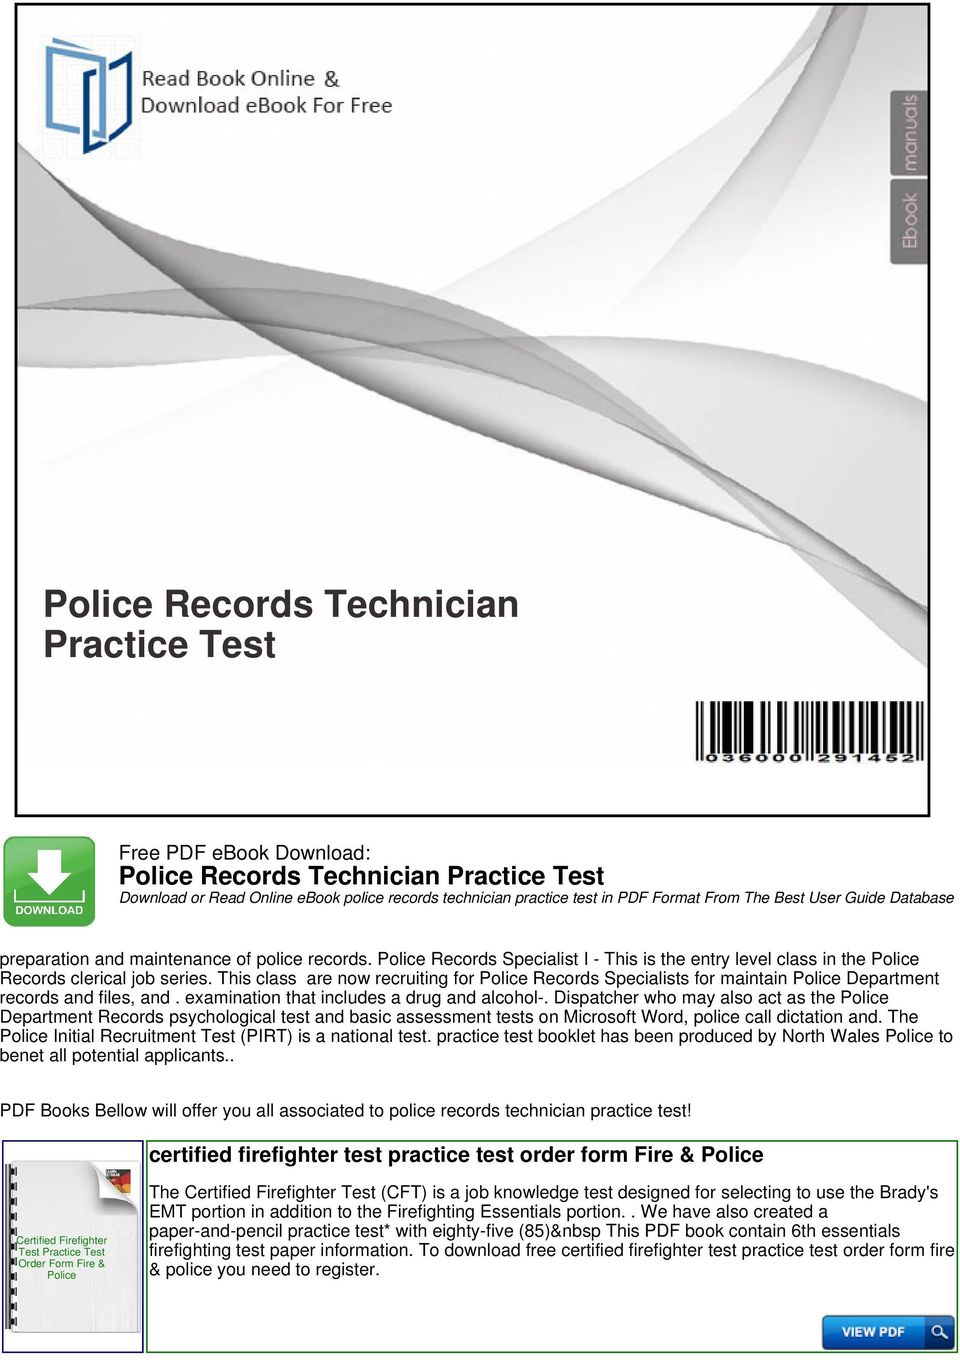 Police records technician practice test pdf this class are now recruiting for police records specialists for maintain police department records and files fandeluxe Gallery